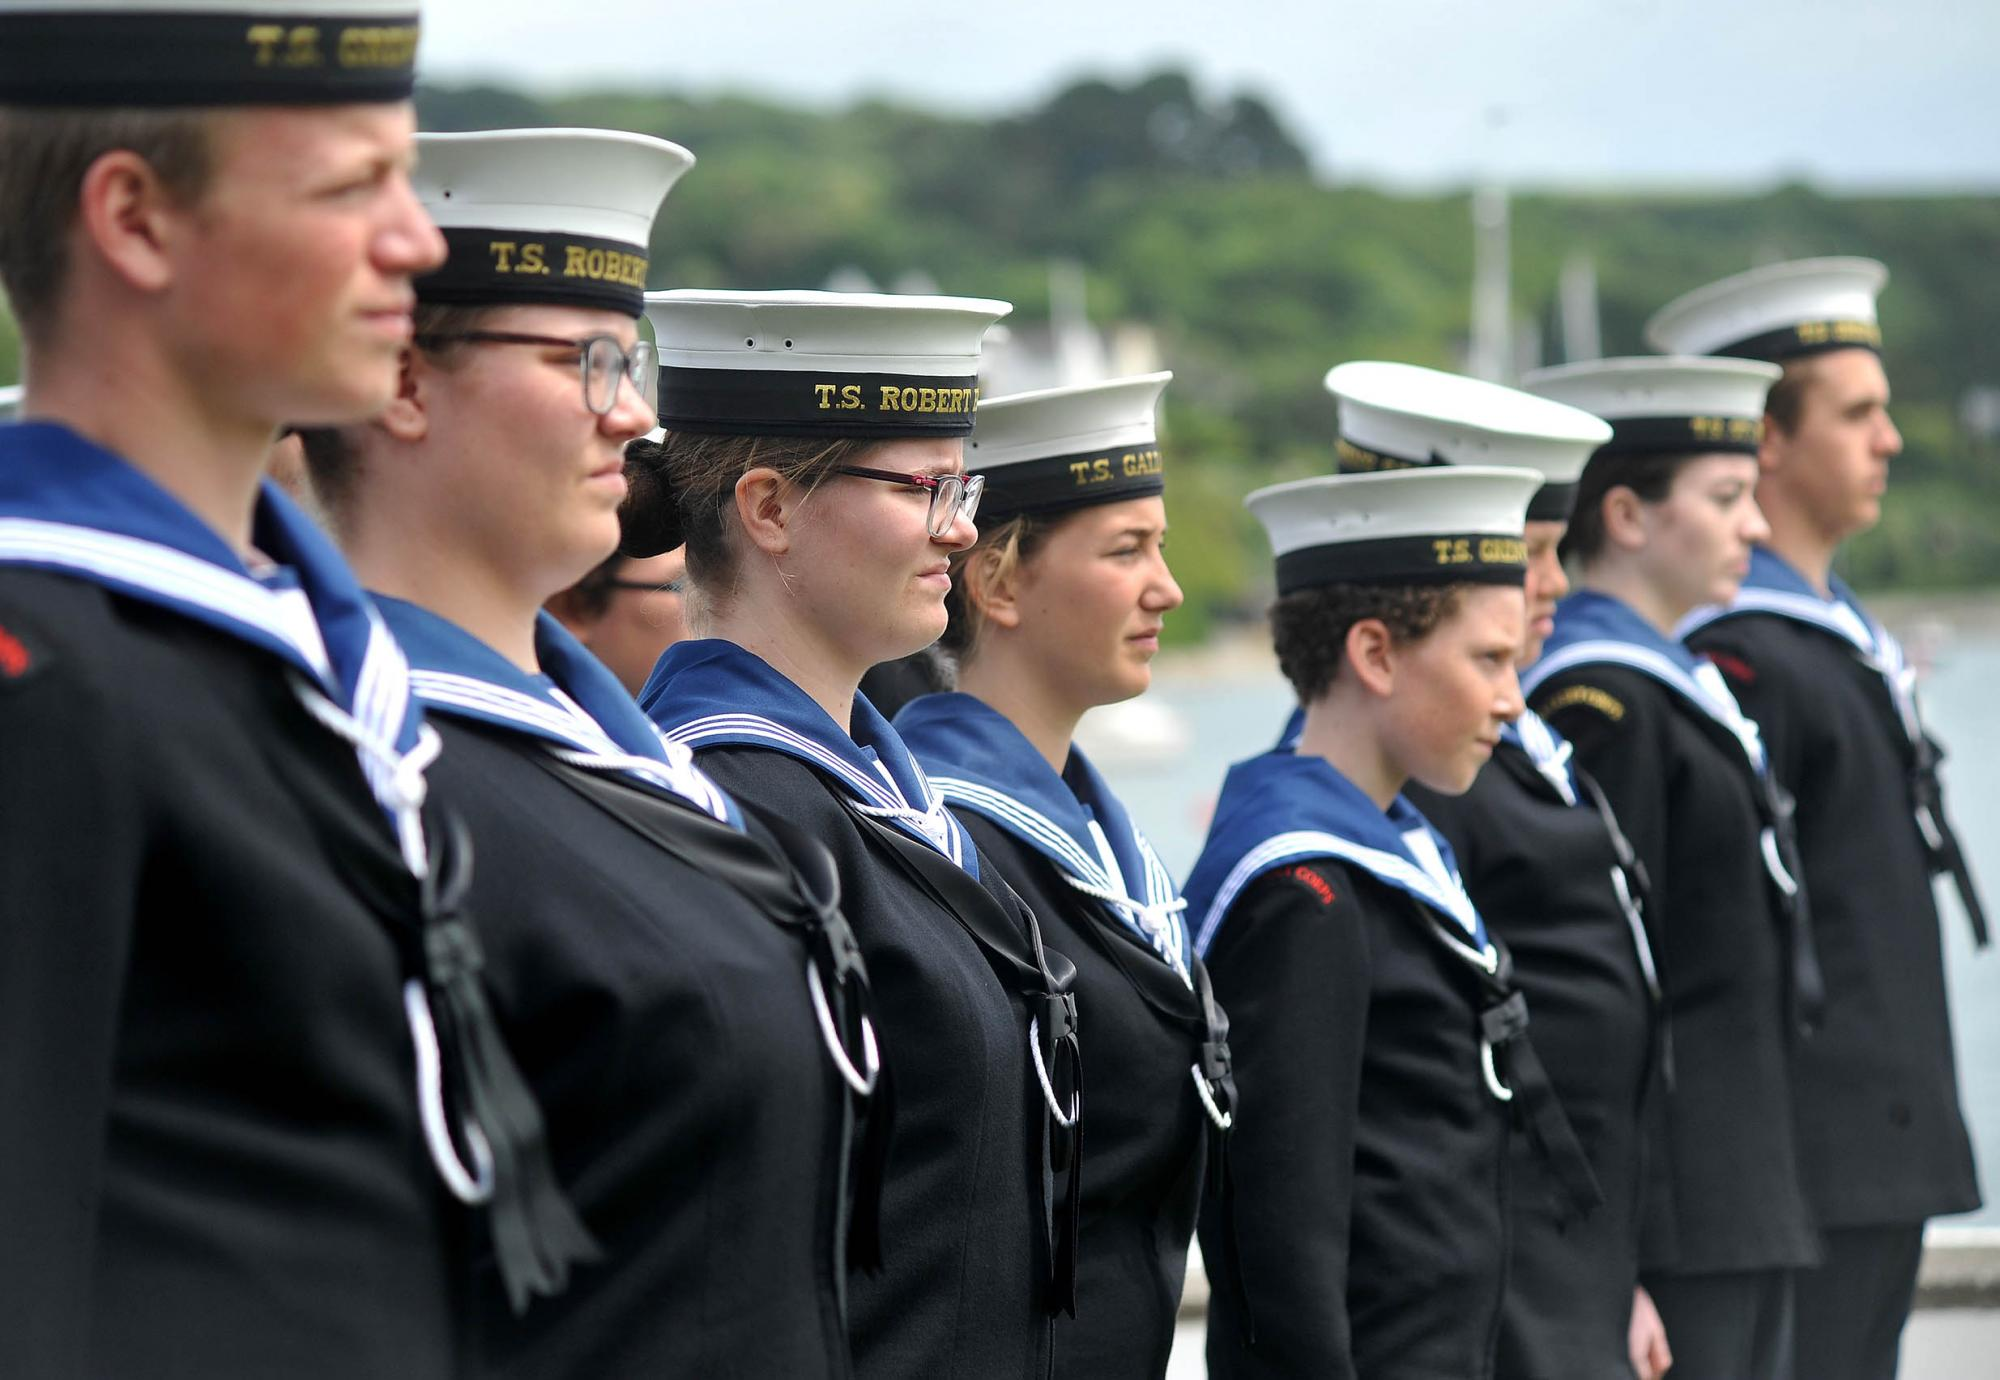 Sea Cadets lined up in uniform by the water